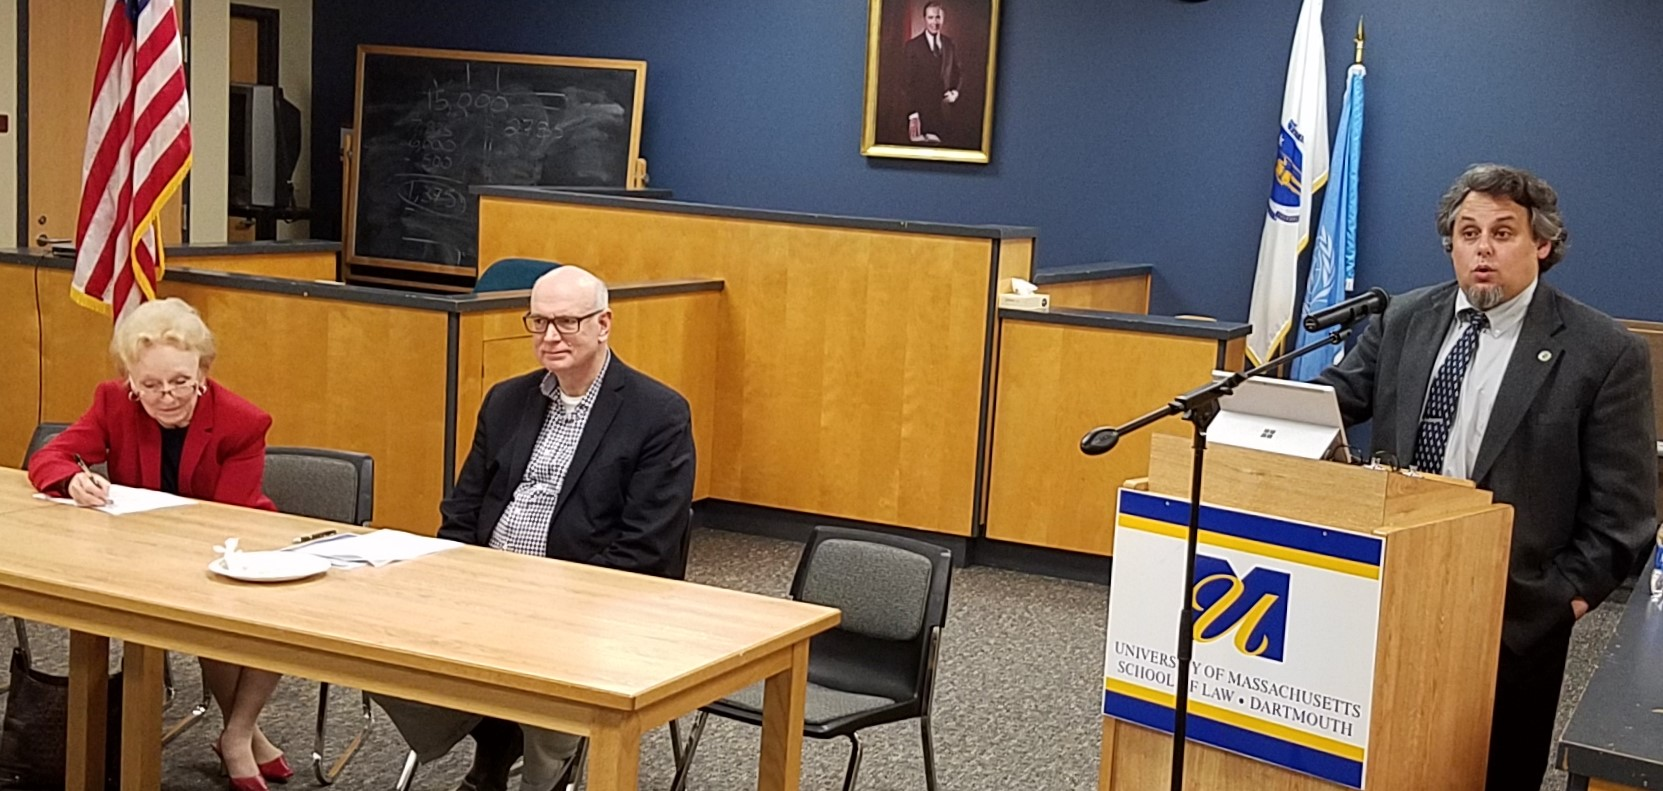 Lecture at Law School by Dr. Steven B. Lichtman, Oct. 26, 2016, with Law Professors Duncan & Rudko